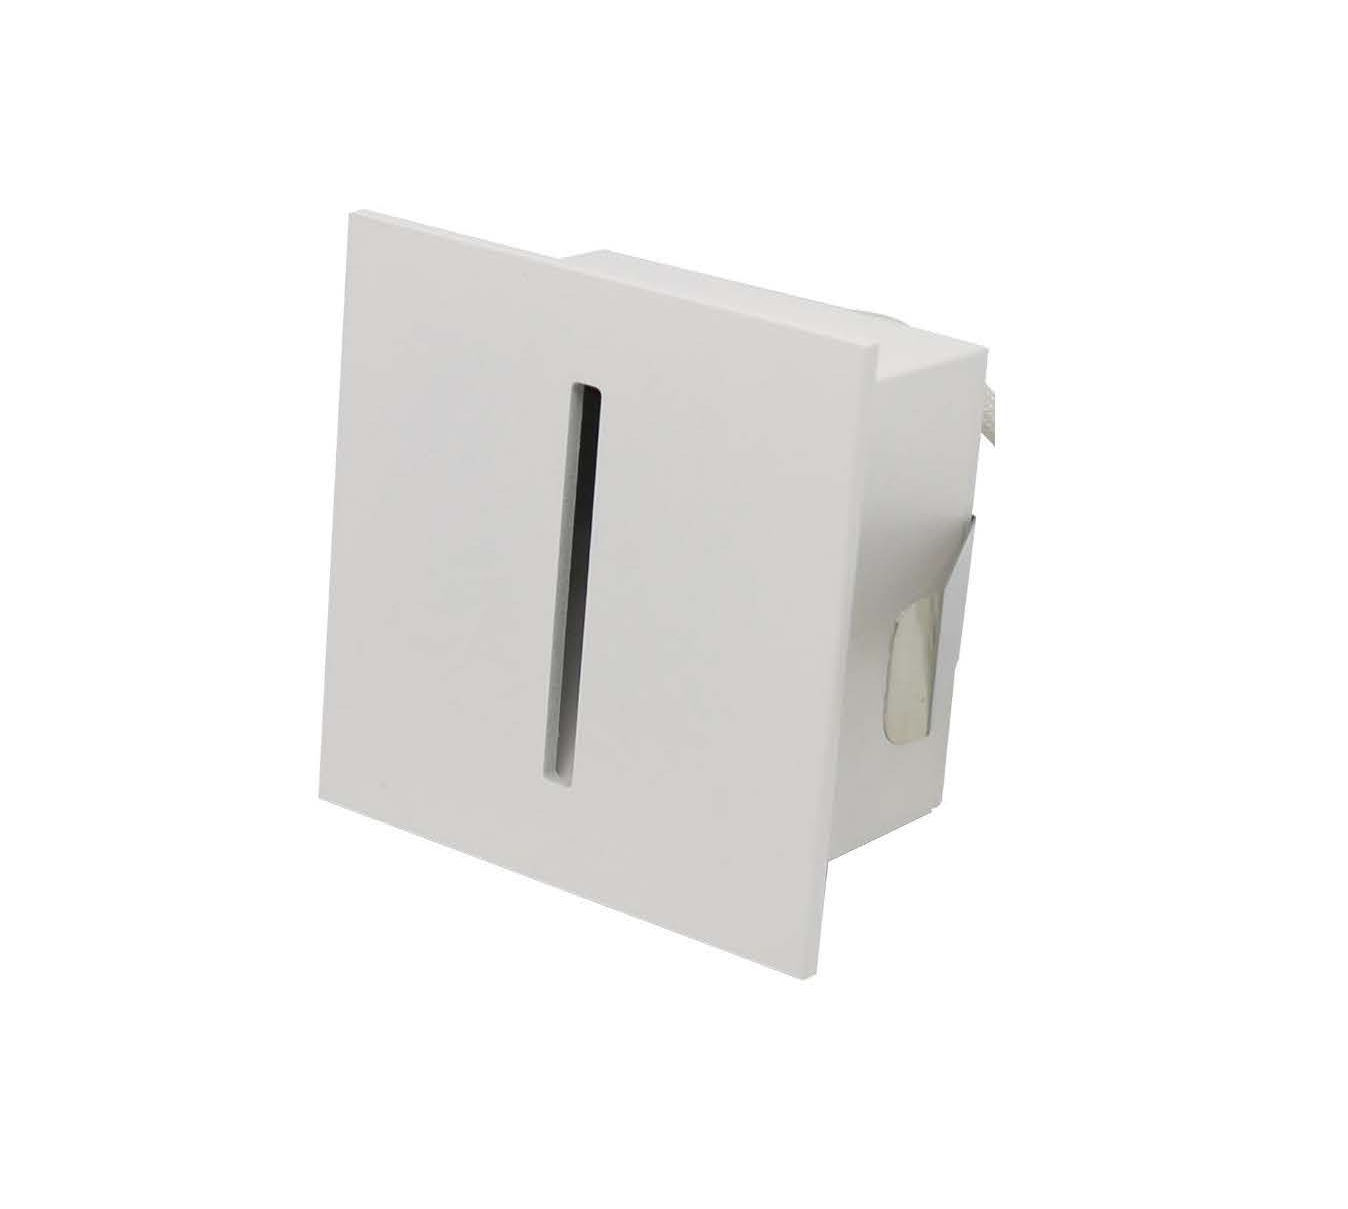 SLIT Recessed Square Wall Light